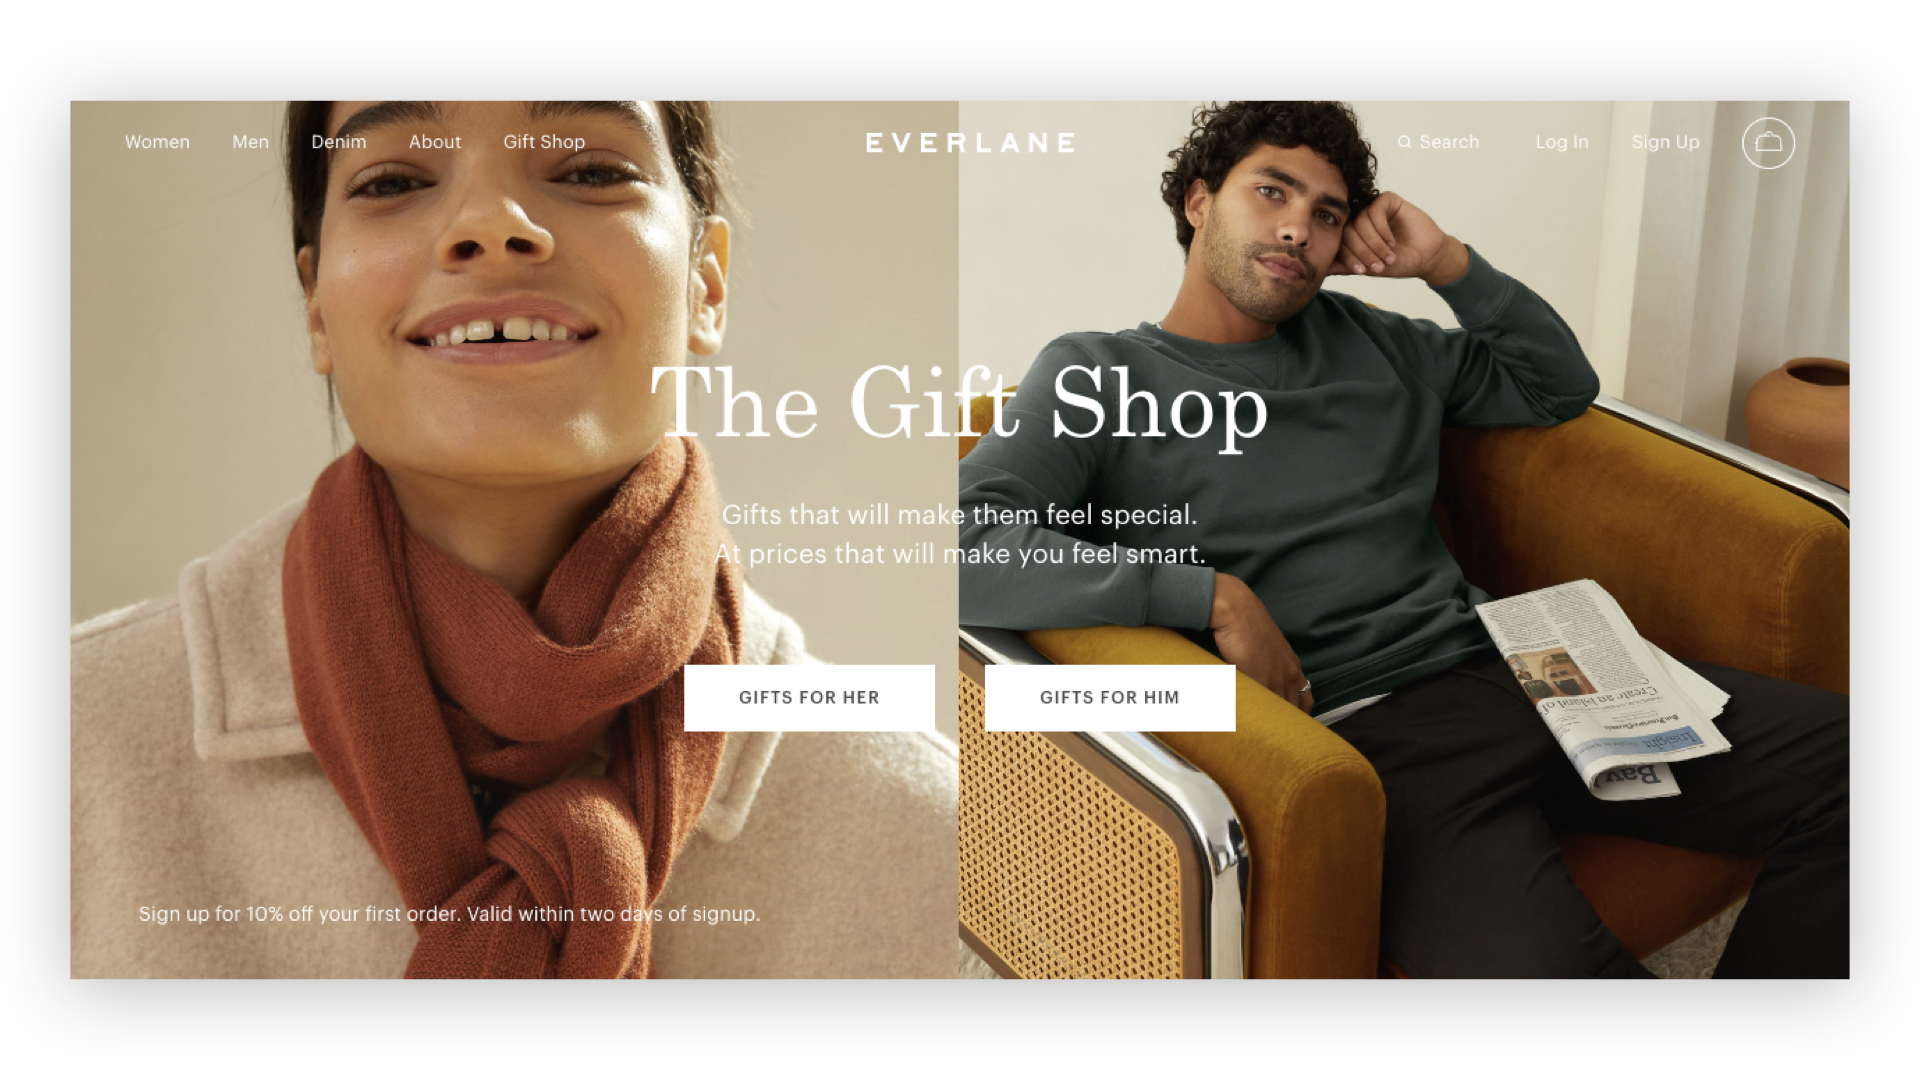 Digital agency on DTC strategy: Everlane's eCommerce site homepage